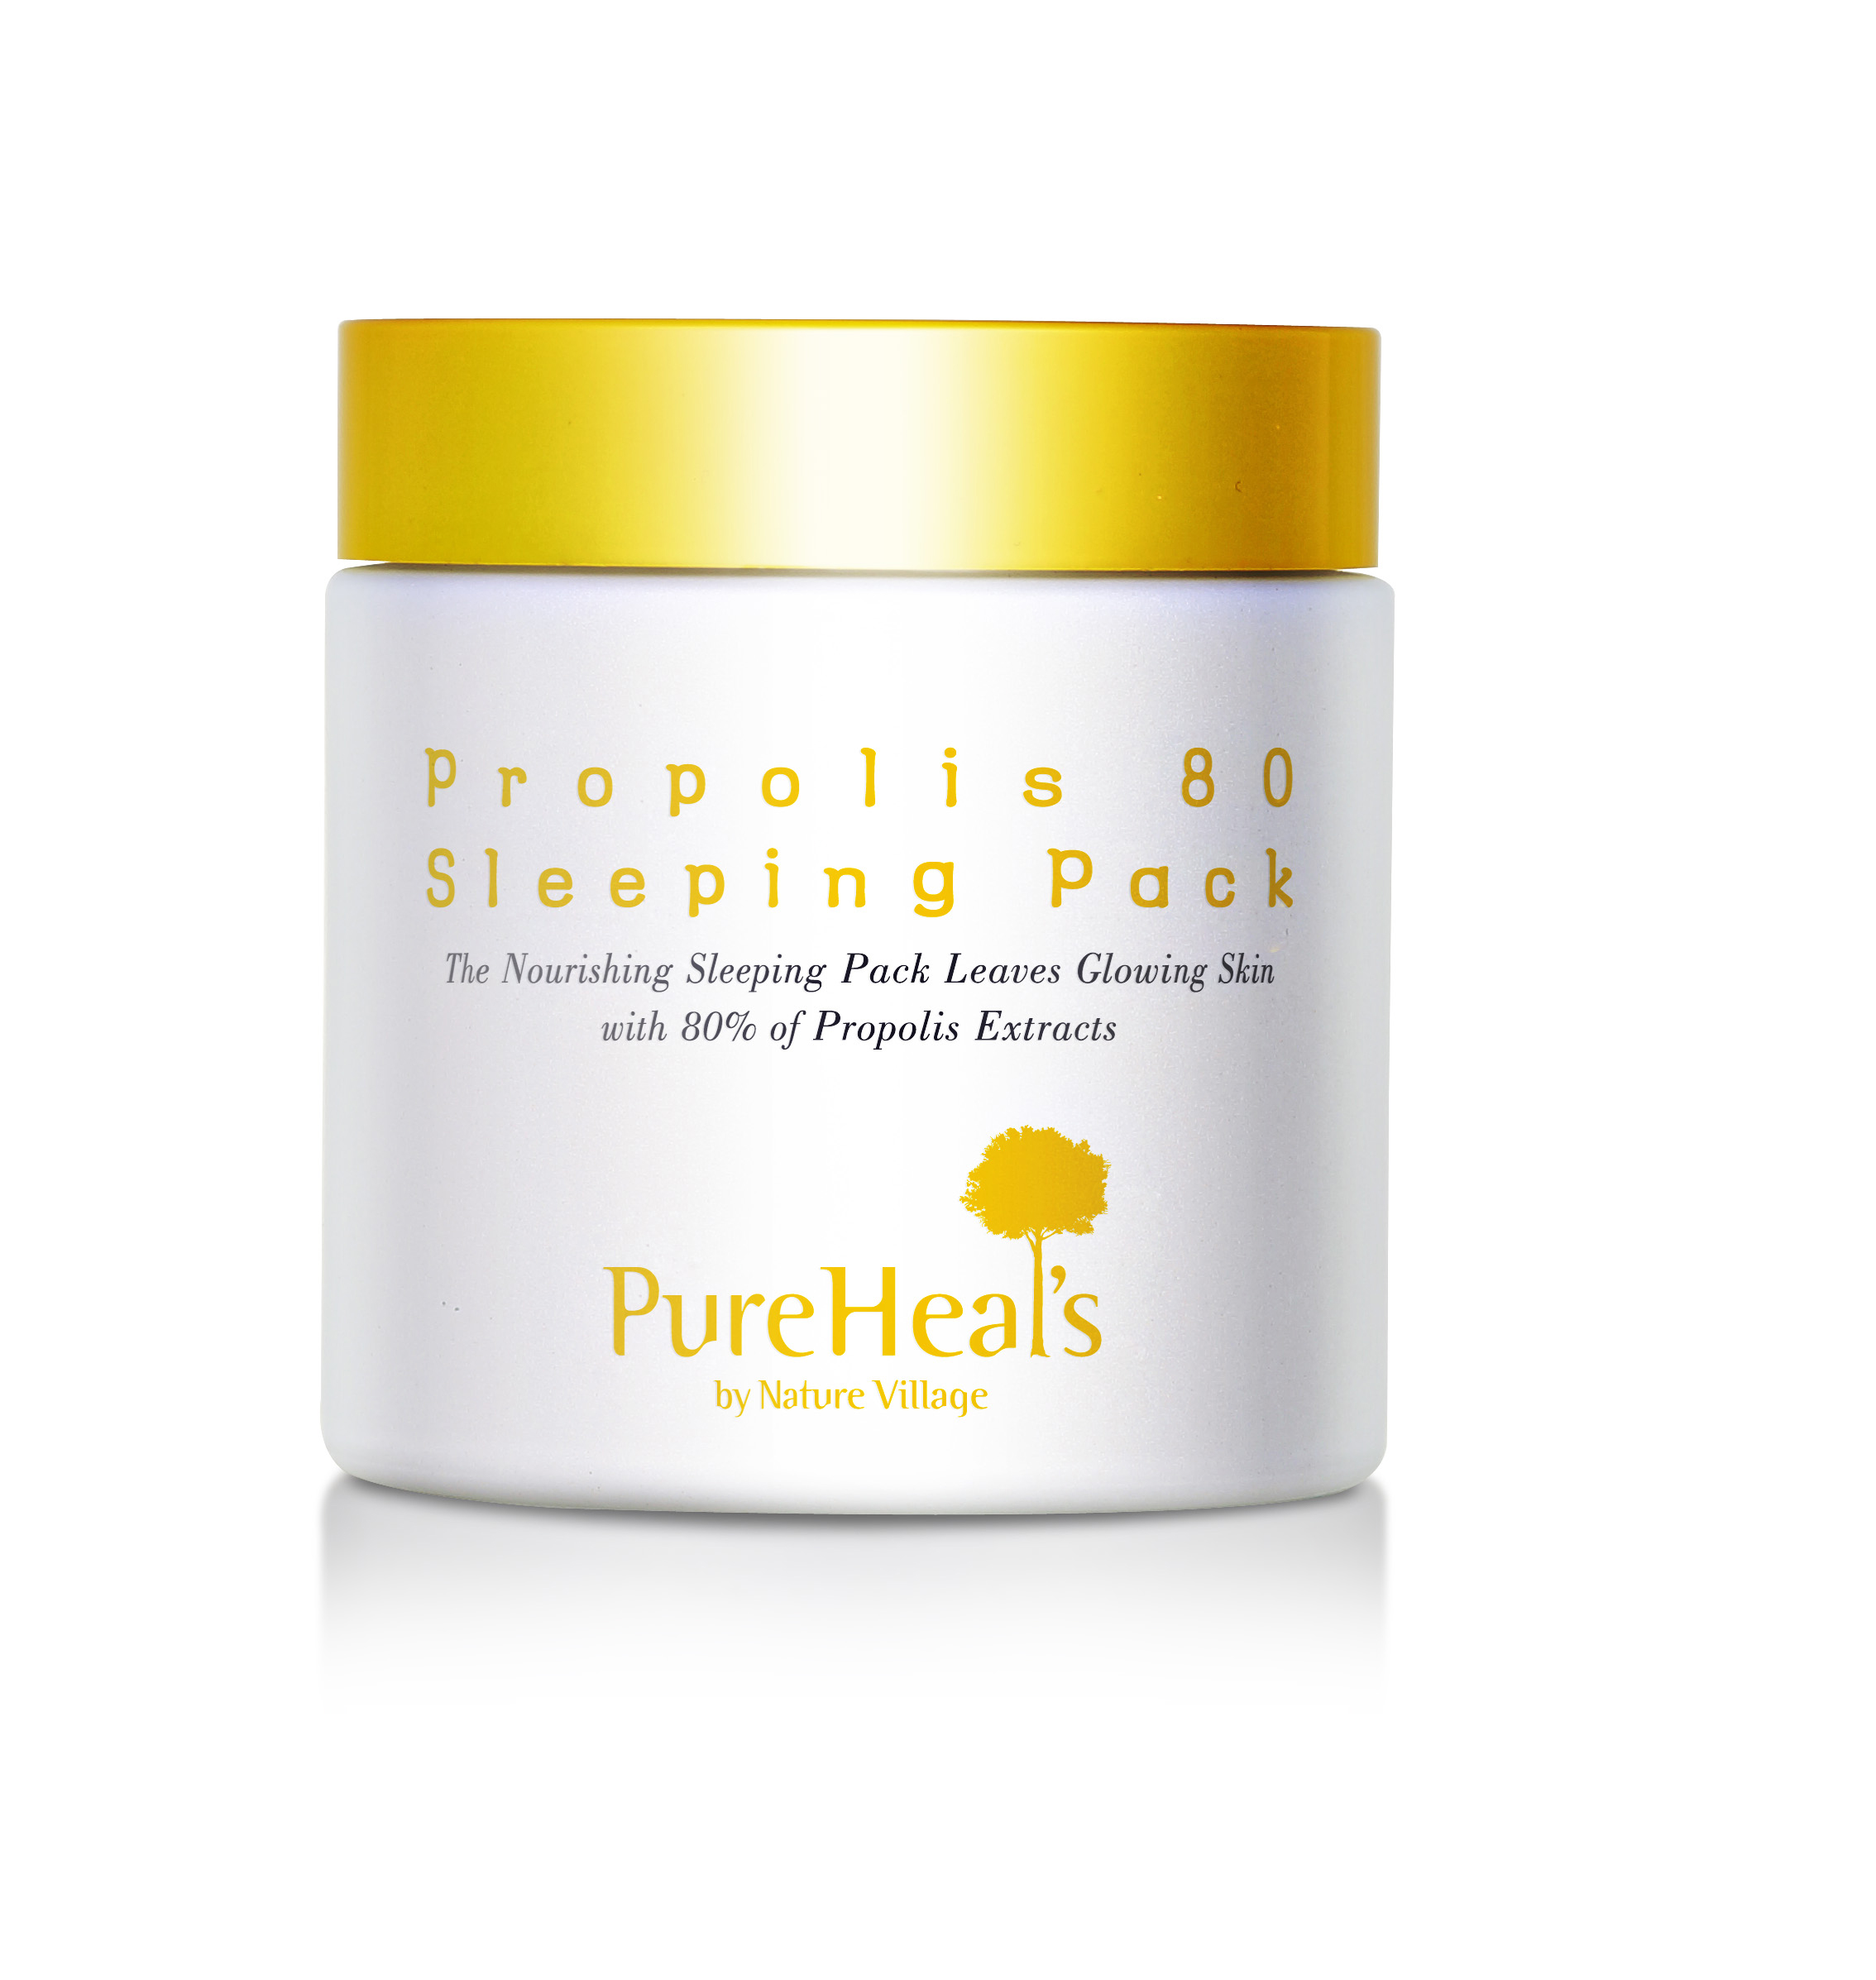 pureheals-propolis-80-sleeping-pack